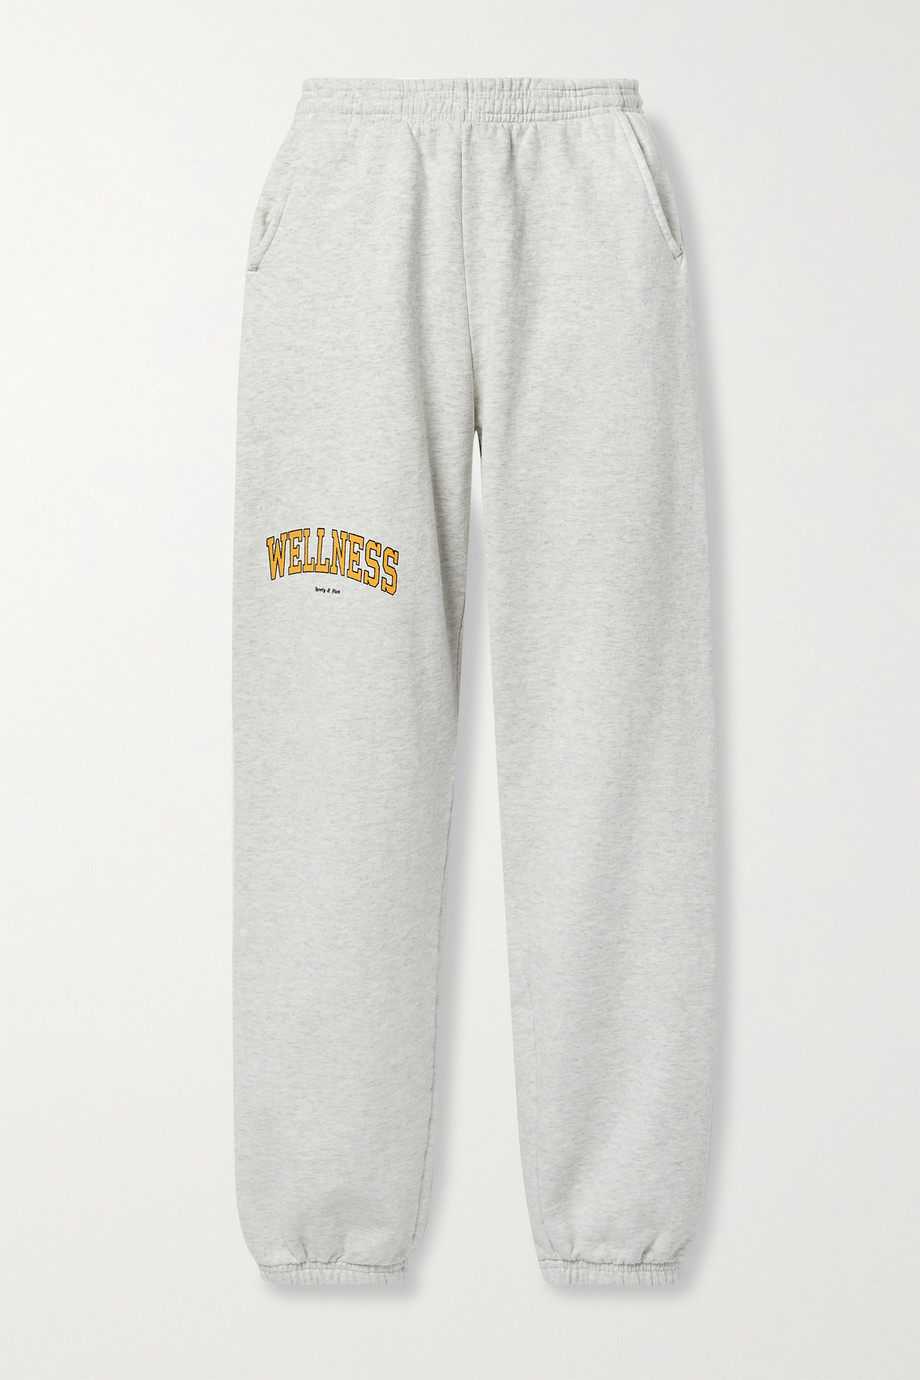 SPORTY & RICH Wellness Ivy printed mélange cotton-jersey track pants